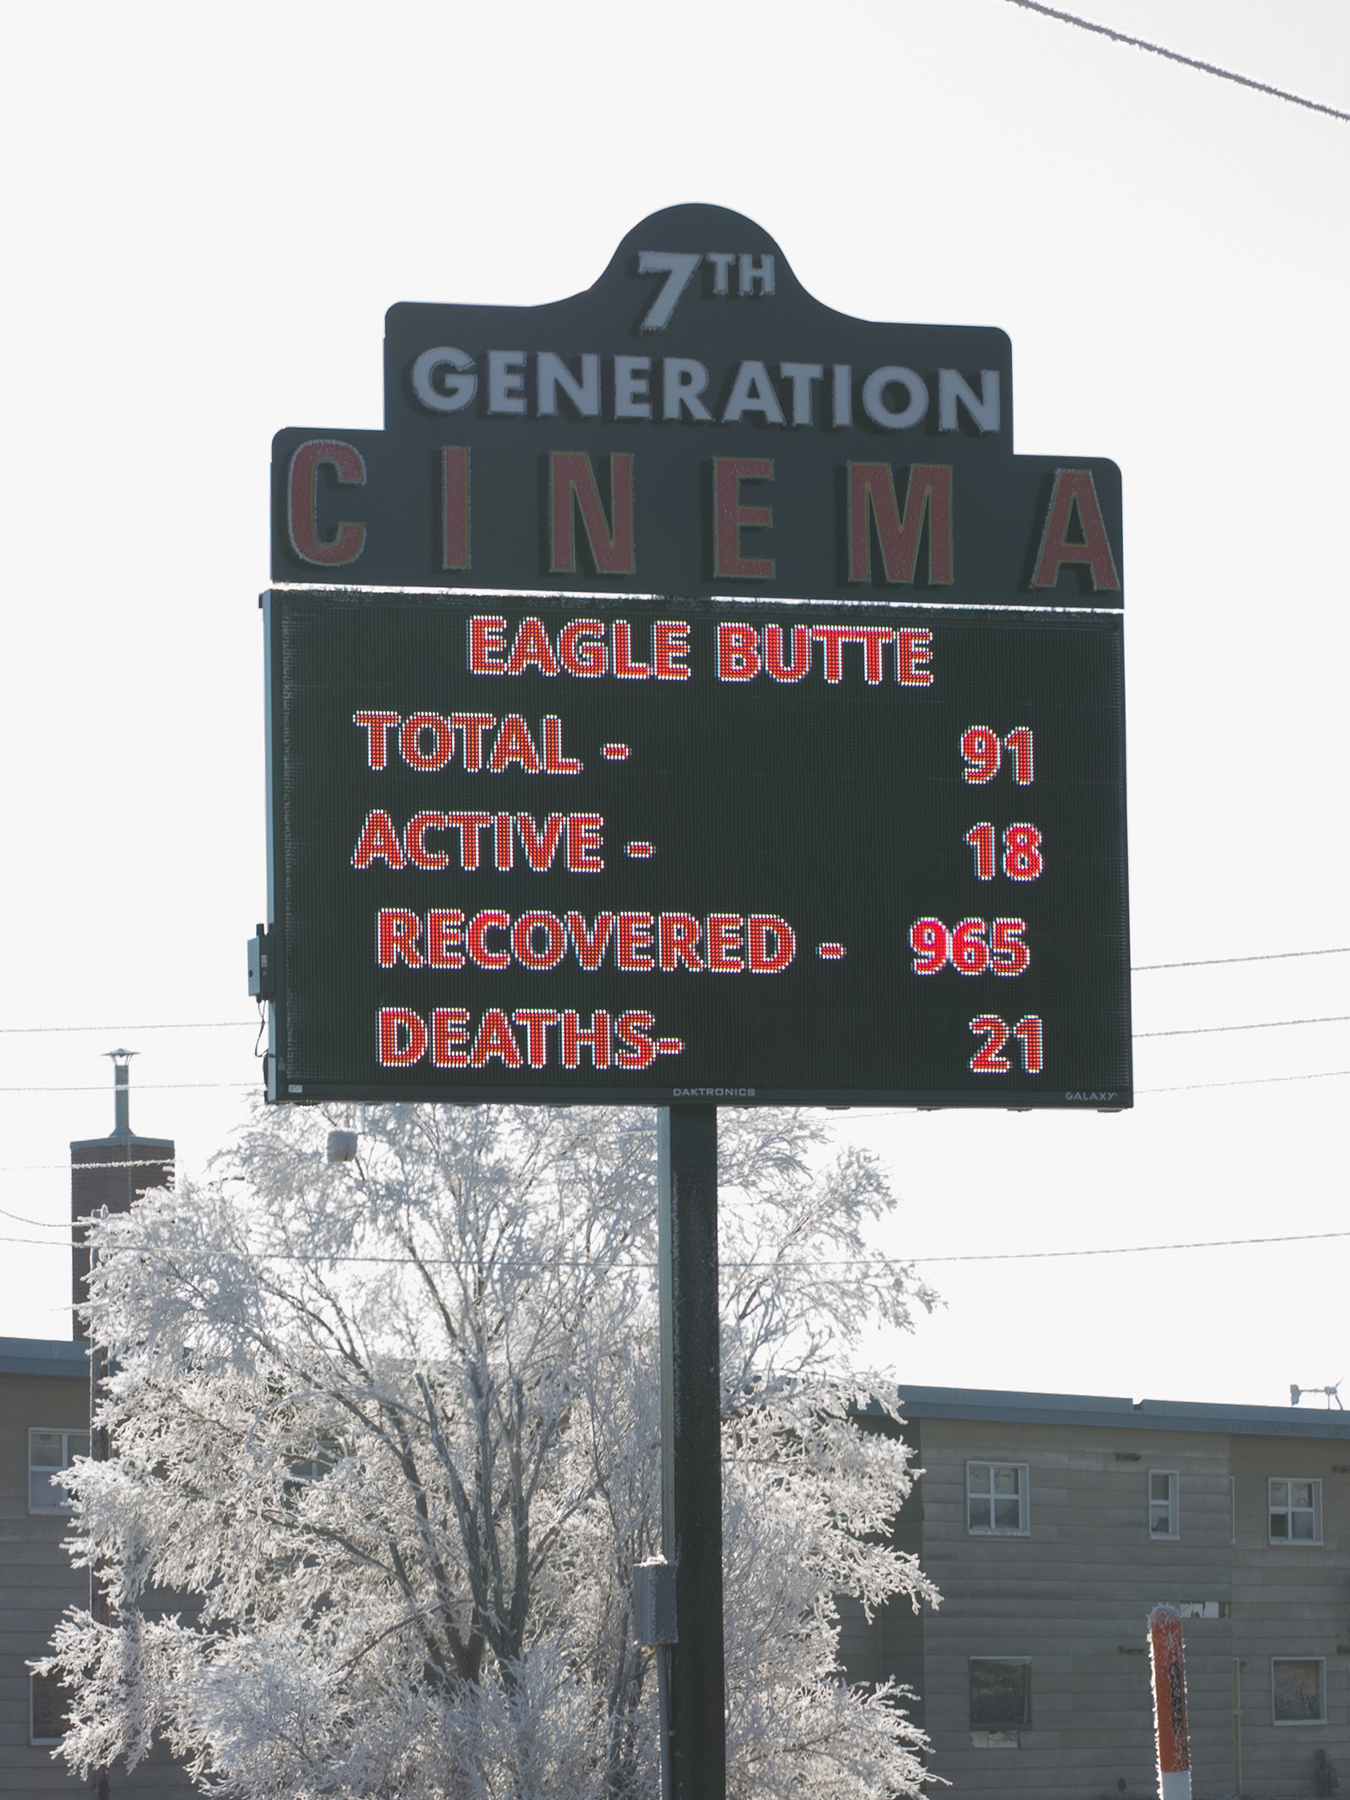 """A list of the daily Covid-19 cases on 7th Generation Cinema signage on the Cheyenne River Sioux reservation in Eagle Butte, South Dakota, U.S., on Saturday, Jan. 30, 2021. Covid is on the retreat in South Dakota, not long ago the virus's epicenter in the U.S. """"We were in dire straits,"""" said Harold Frazier, chairman of the Cheyenne River Sioux, who set up highway checkpoints and instituted lockdowns to protect a community whose health was already challenged by poverty, obesity and diabetes. Photographer: Dawnee Lebeau/Bloomberg via Getty Images"""